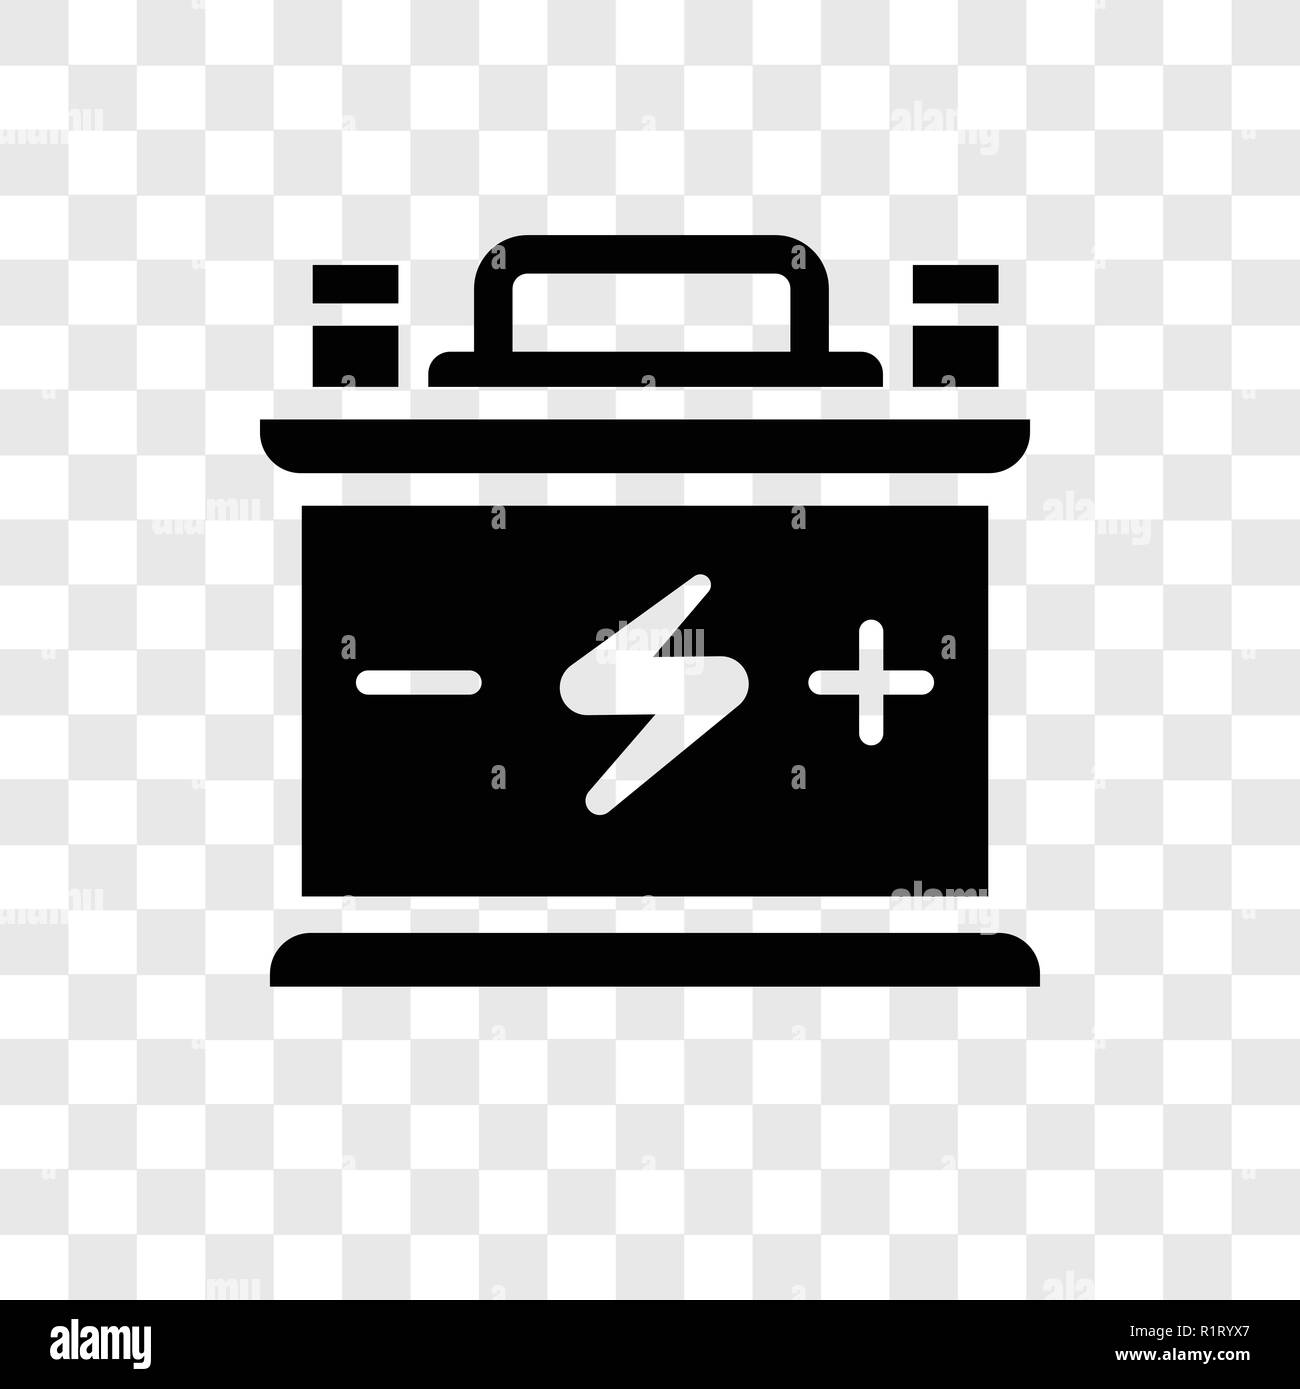 battery vector icon isolated on transparent background battery transparency logo concept stock vector image art alamy https www alamy com battery vector icon isolated on transparent background battery transparency logo concept image224876239 html